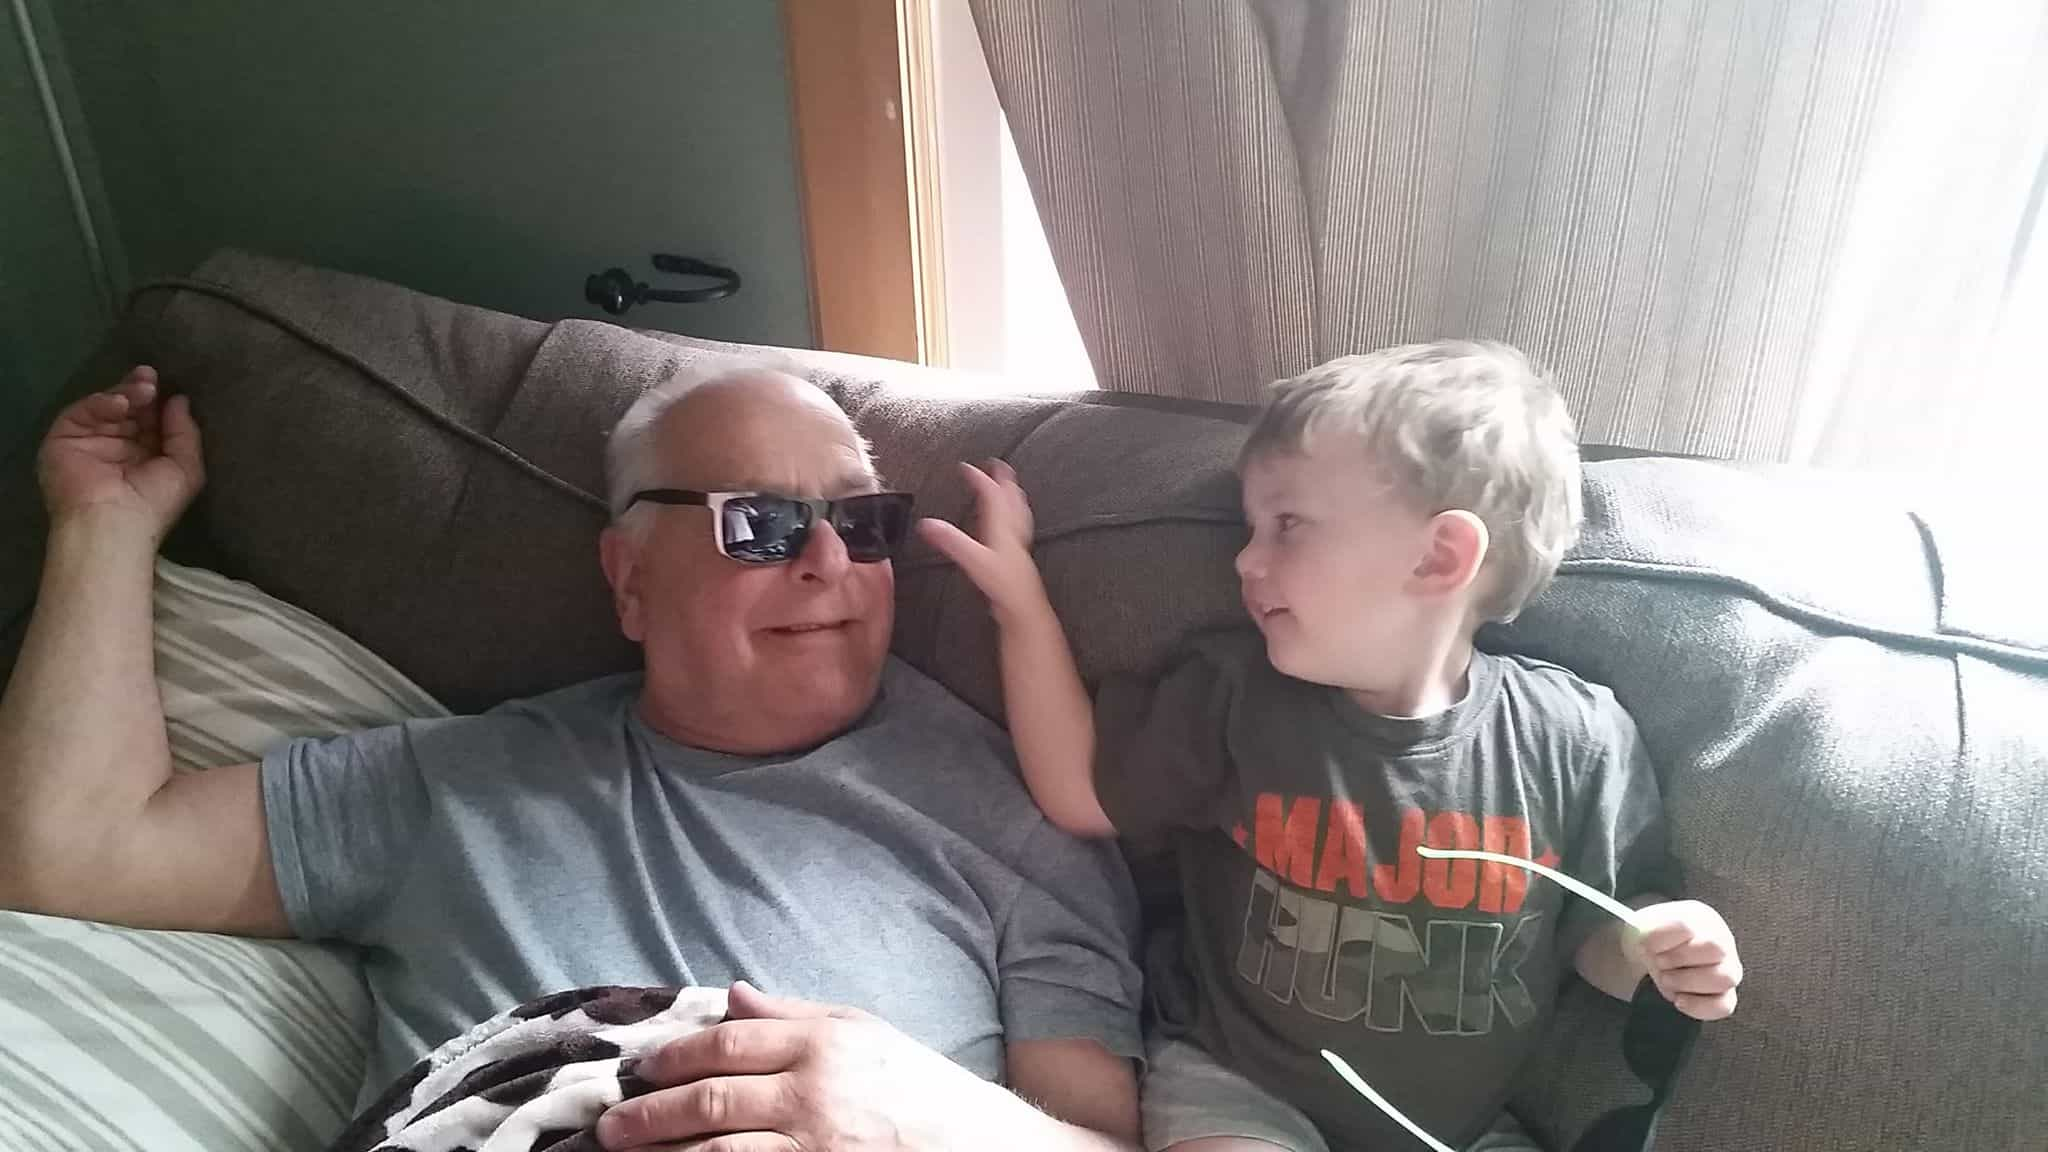 Grandpa sitting next to grandson. Both are smiling and having fun.